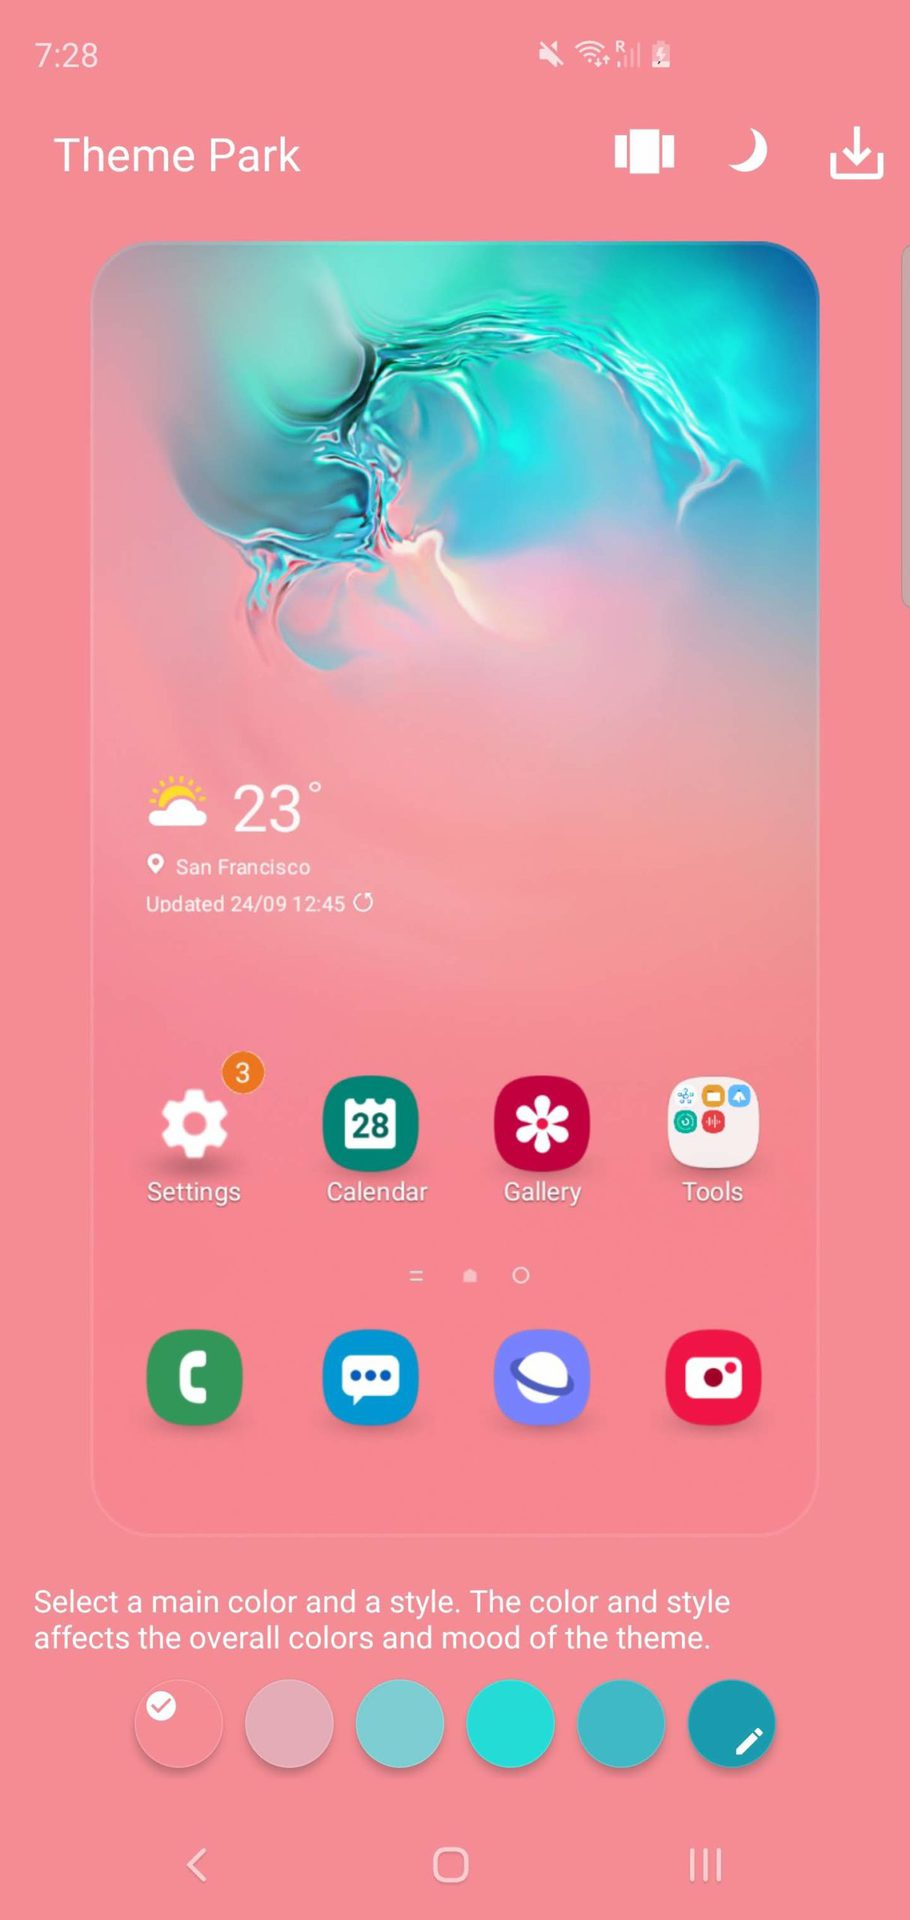 Samsung Theme Park Themes and Style 1